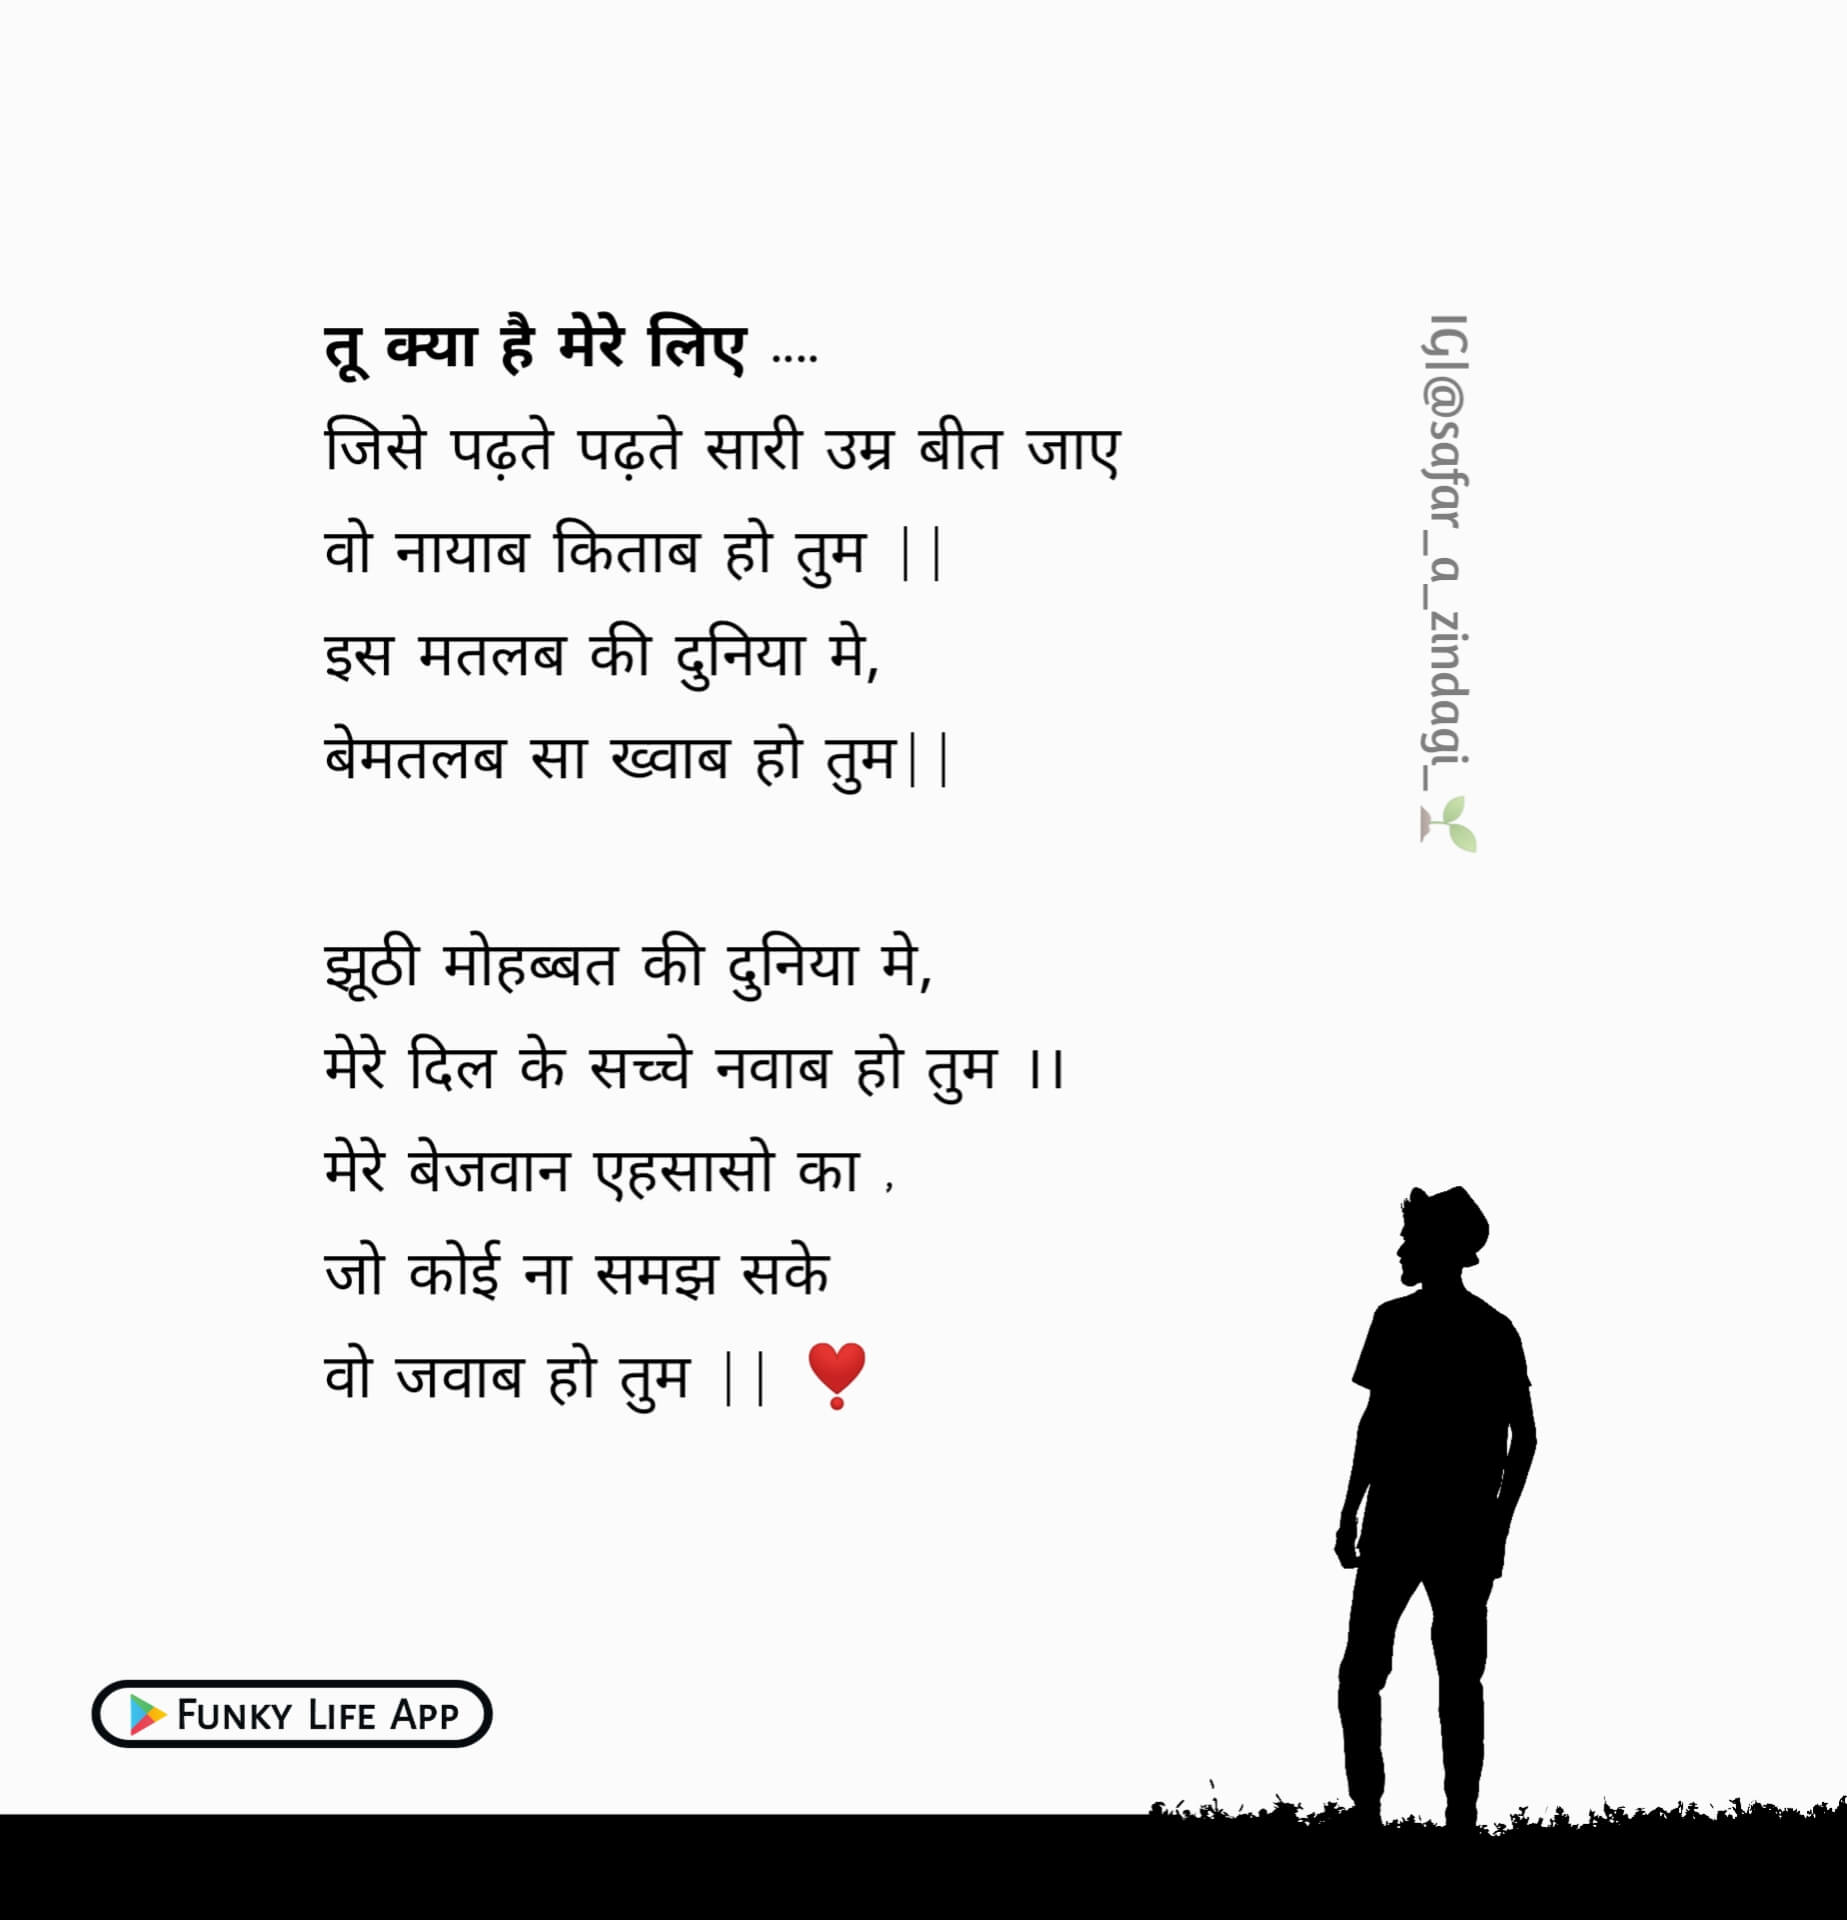 Hindi Poetry Hindi Kavita Funky Life 27